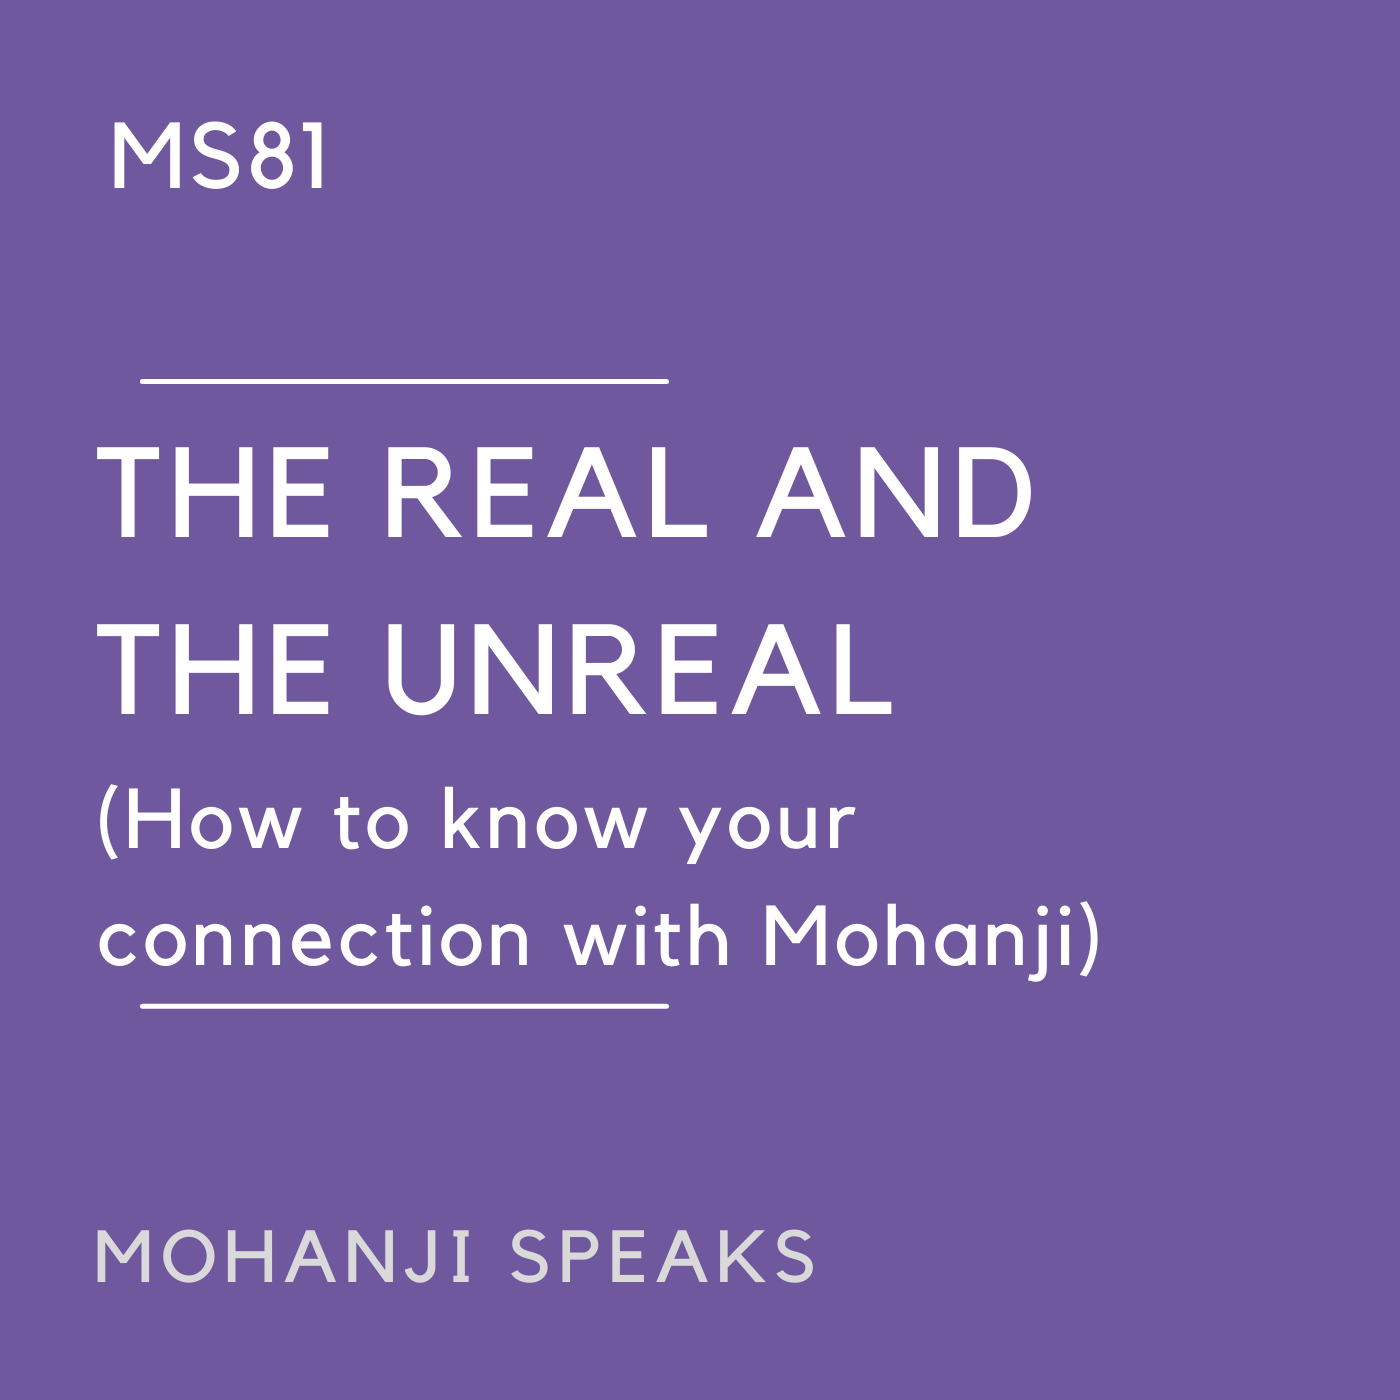 MS81 - The Real and The Unreal (How to know your connection with Mohanji)